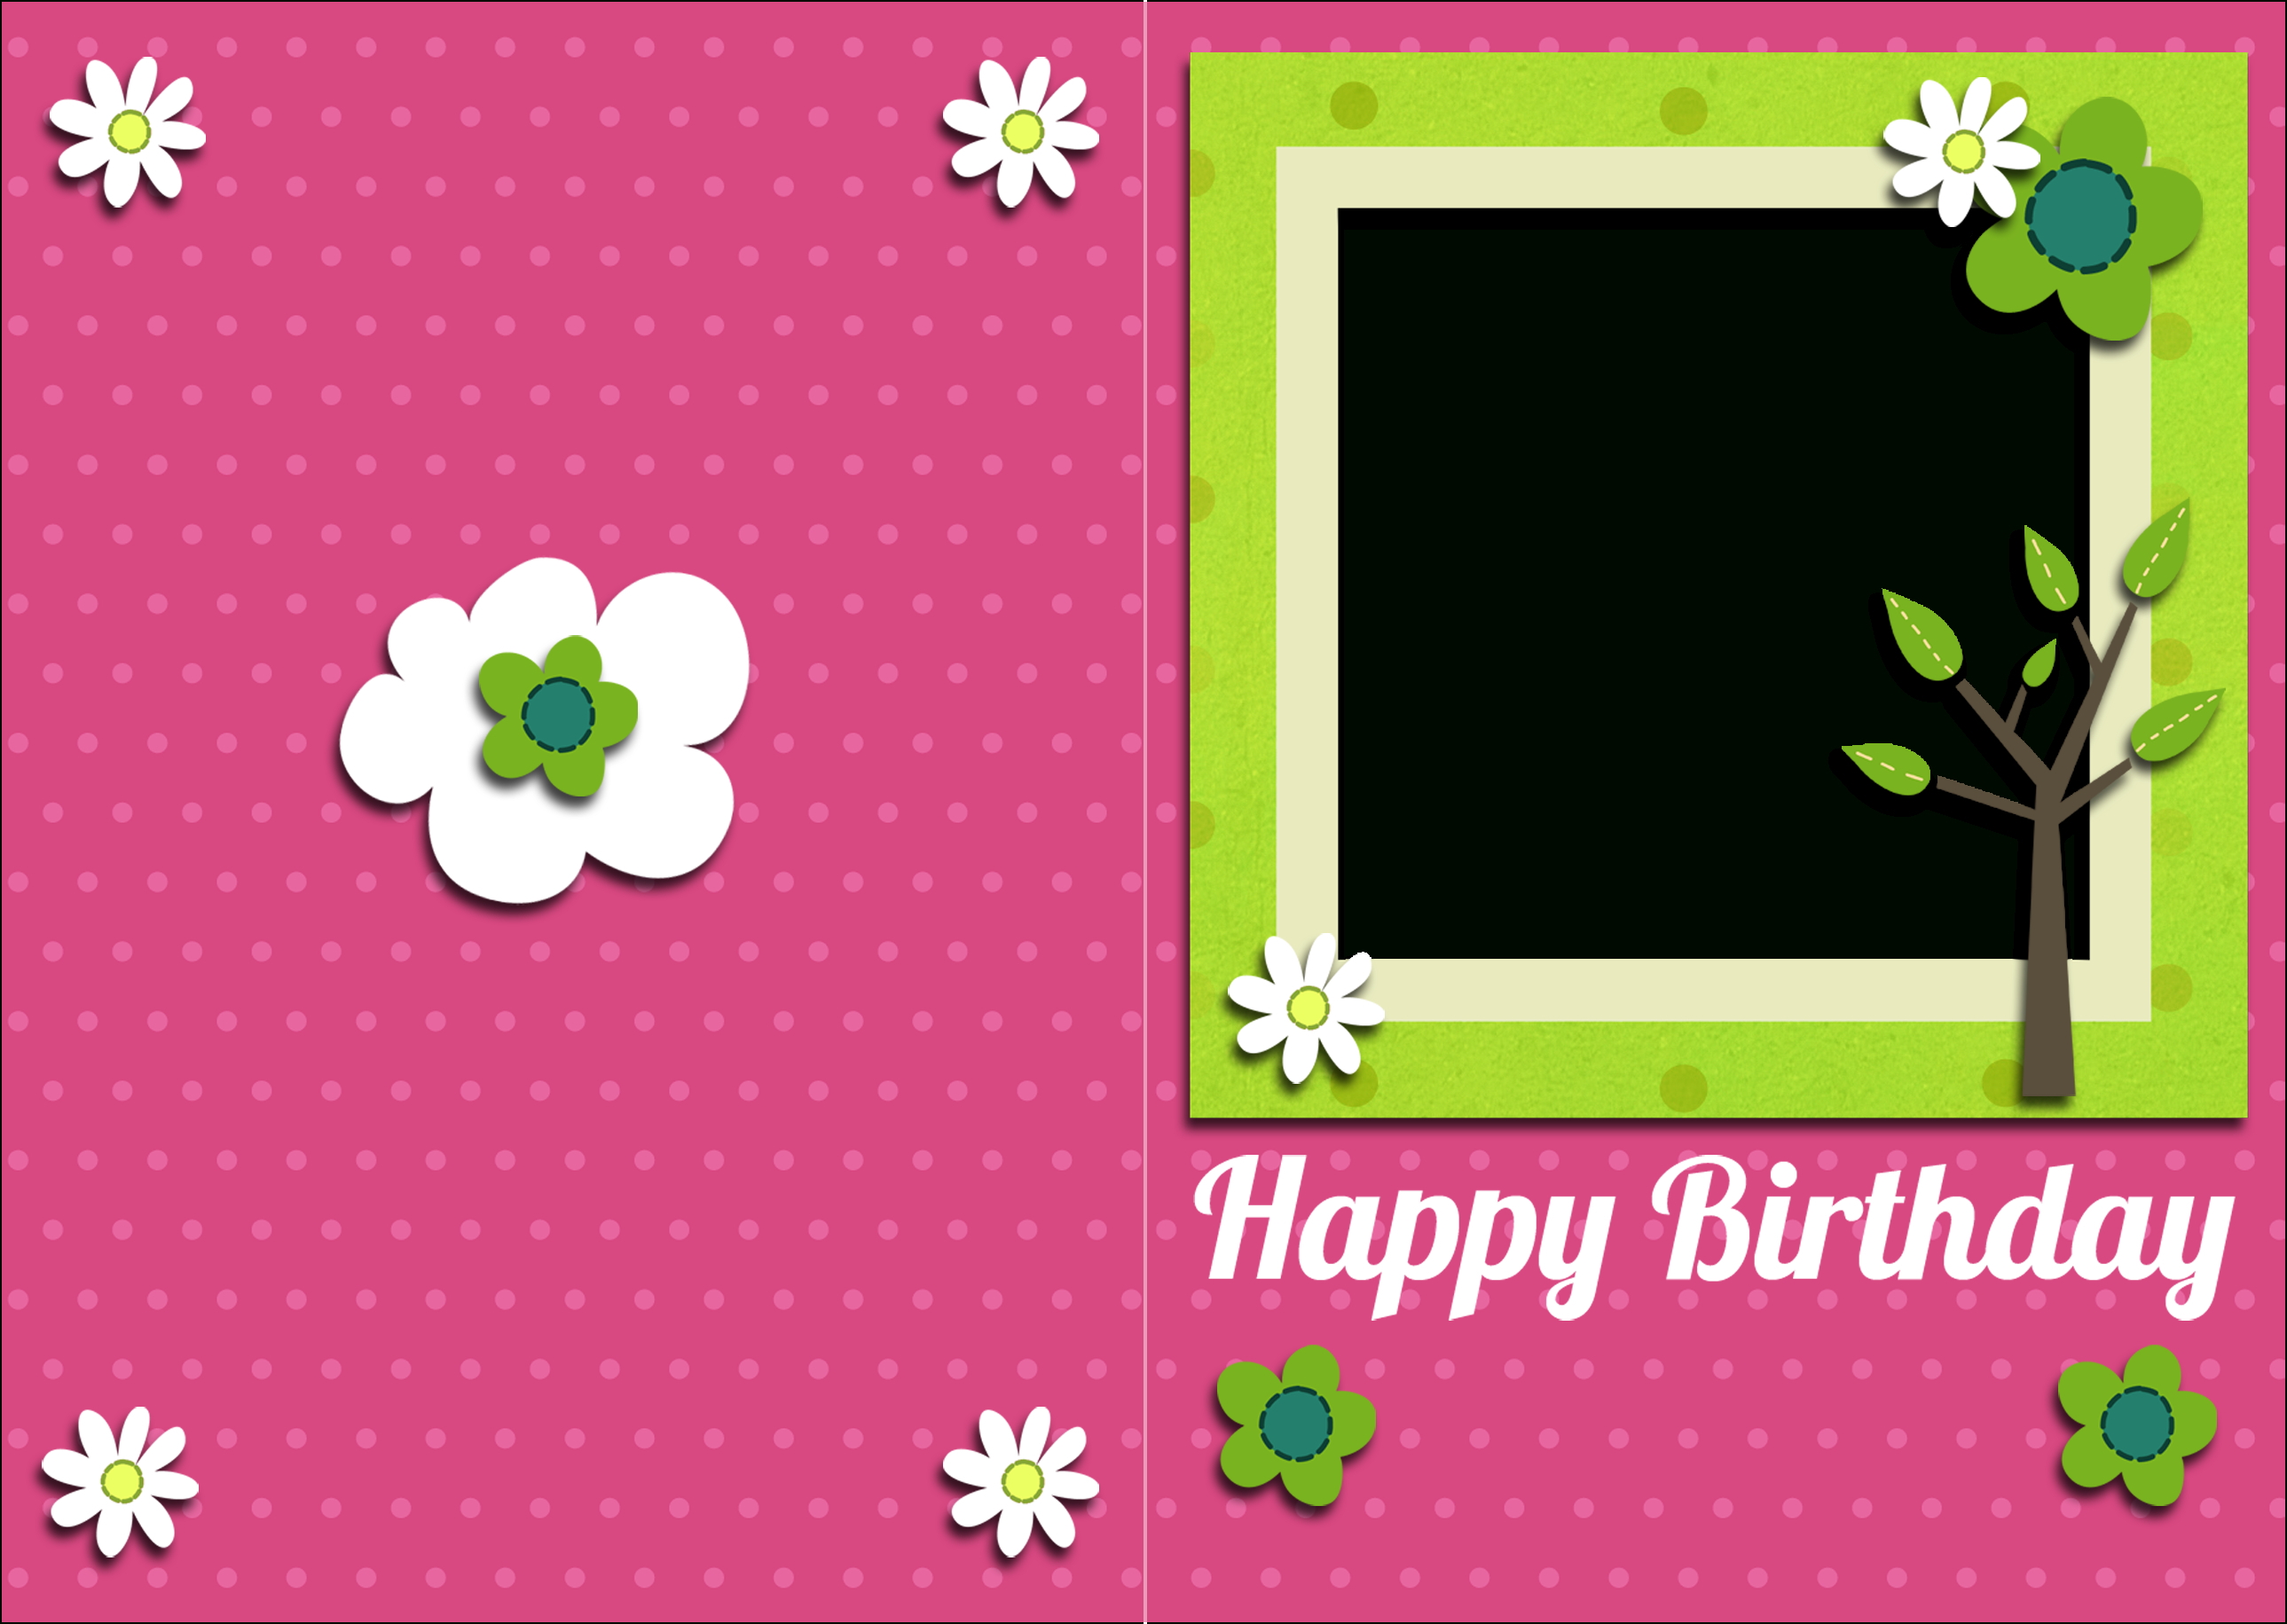 Printable Birthday Cards Hd Wallpapers Download Free Printable - Free Printable Cards Online